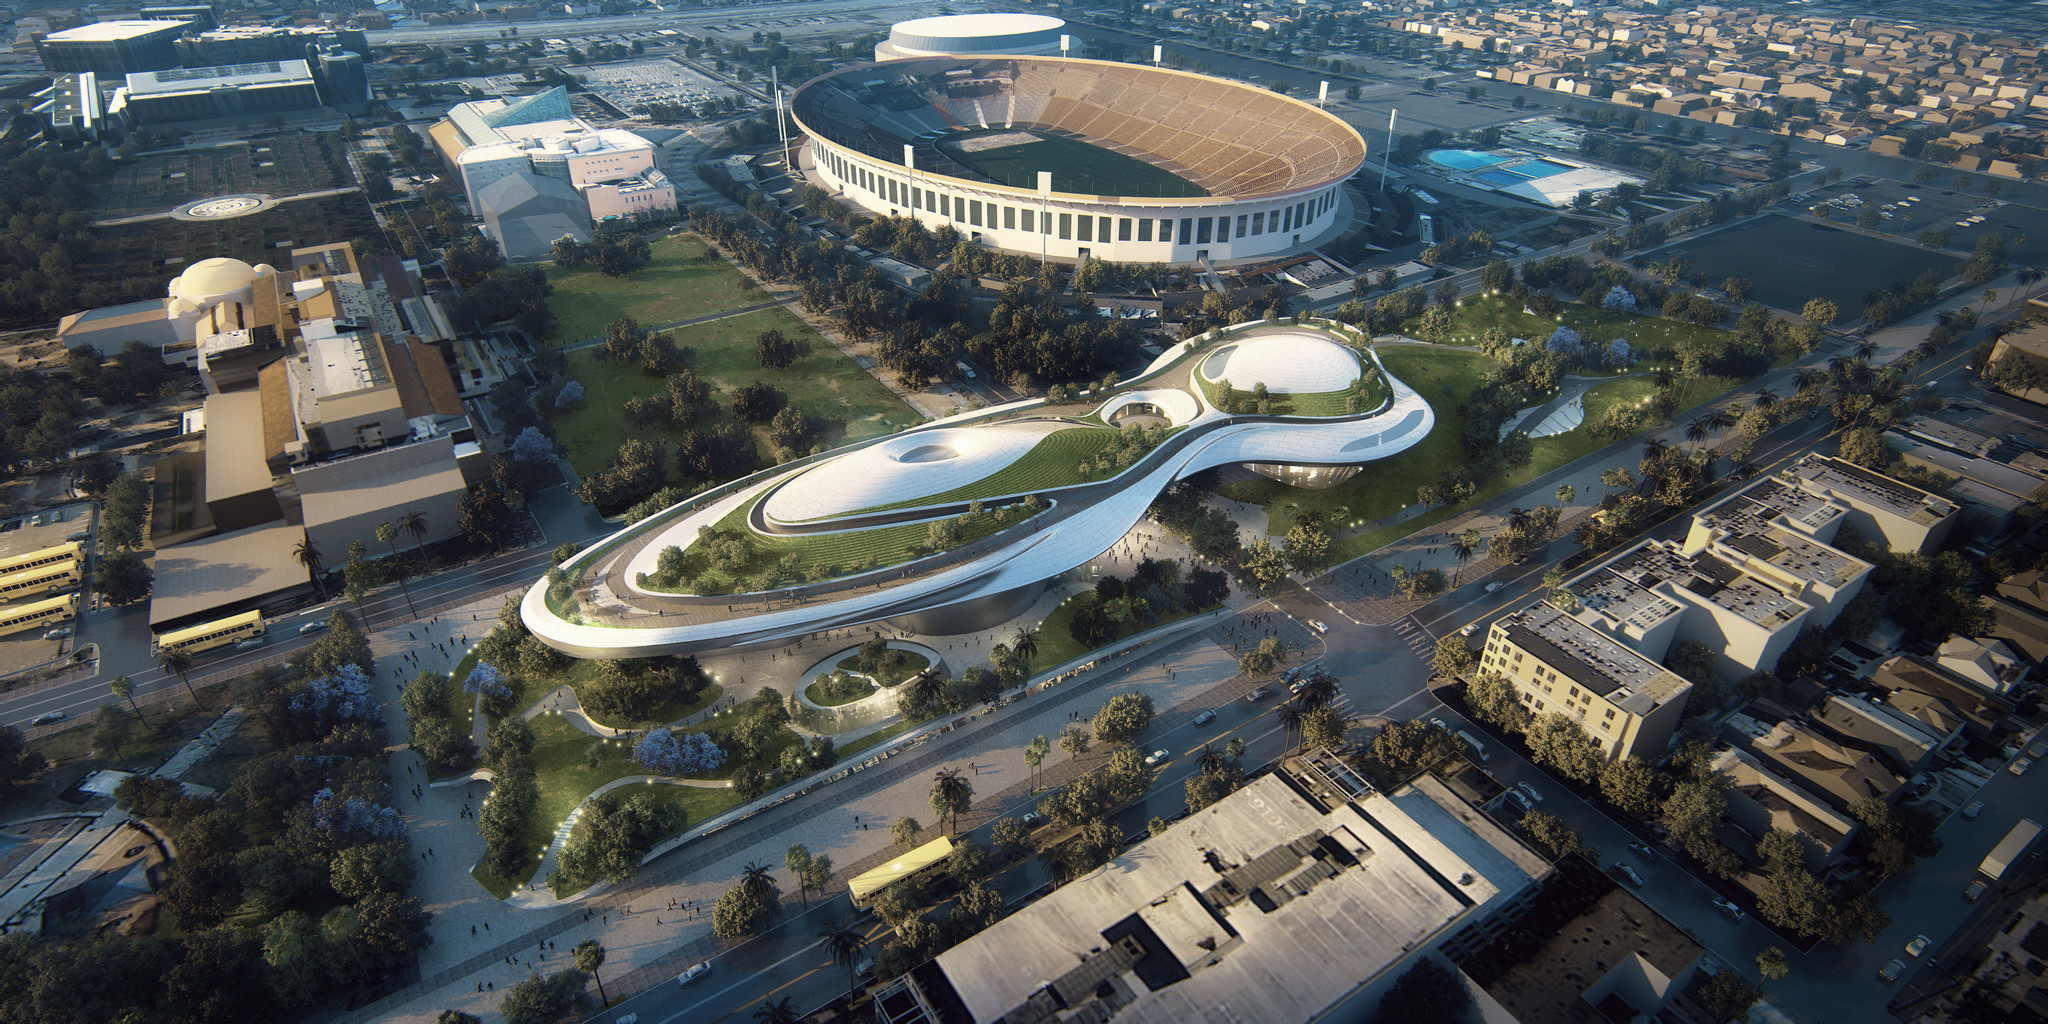 The future museum will sit in a park with three other museums and have the Coliseum, a soccer stadium and USC nearby.